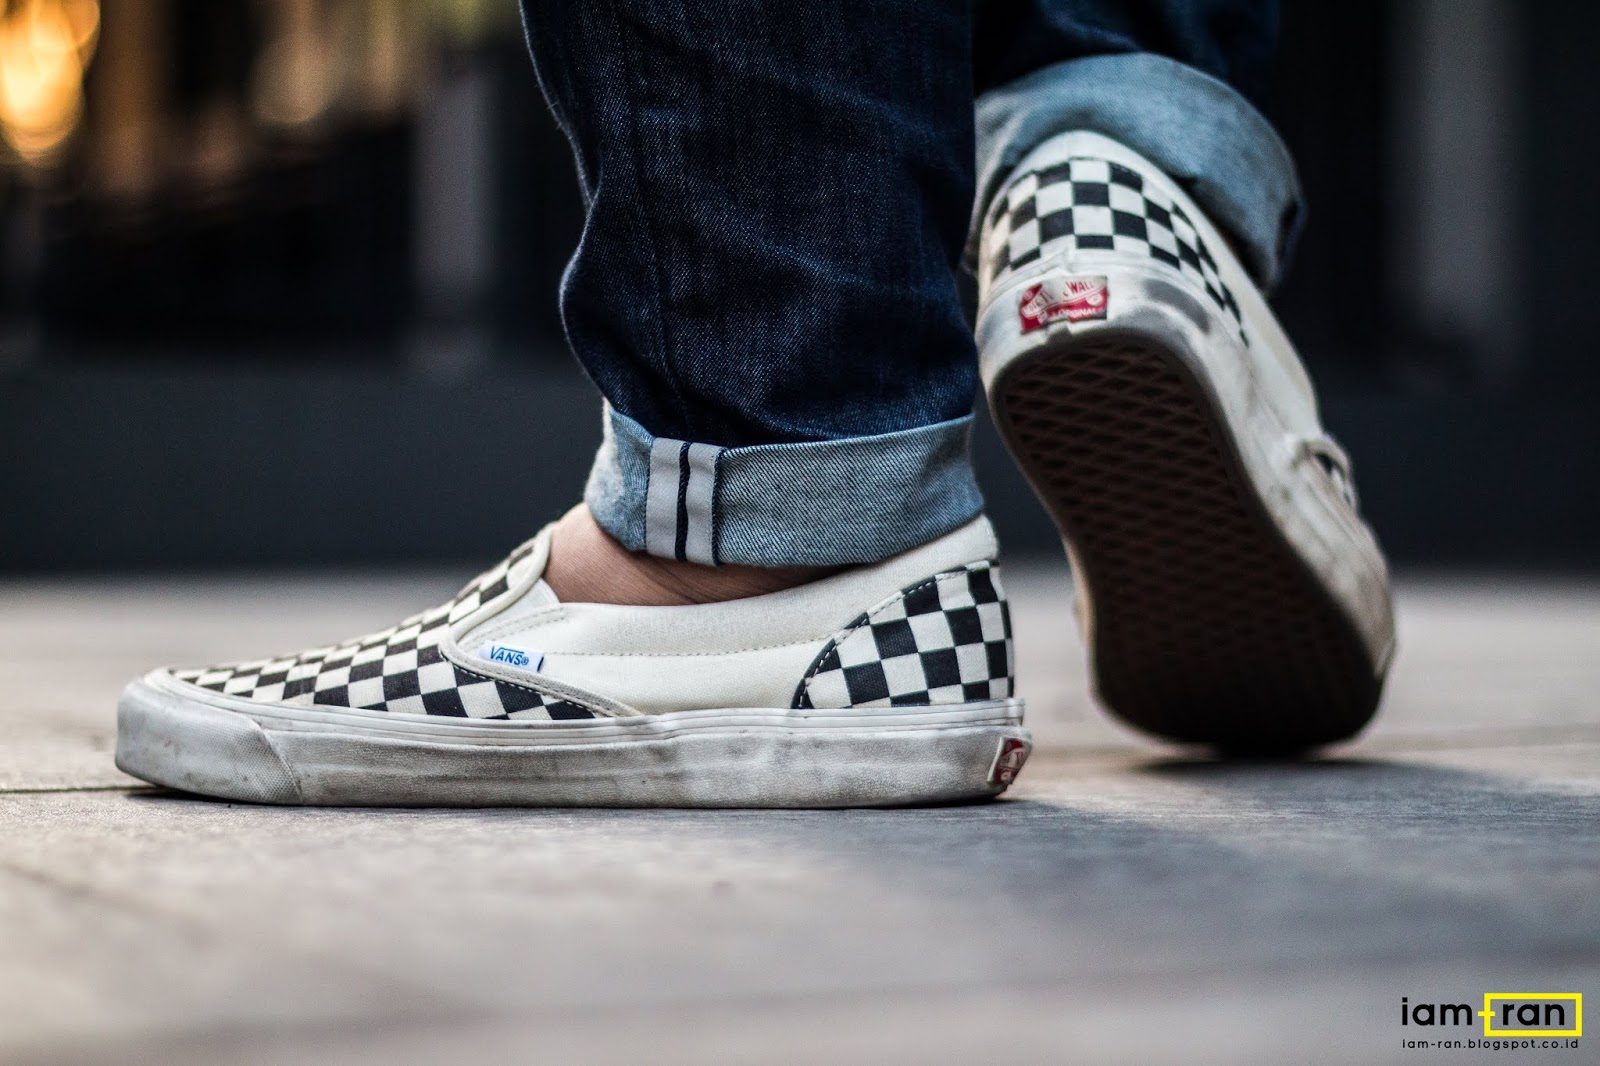 34675c26301af2 Ryan on feet. Sneakers   Vans Slip on Vault OG Checkerboard. Photo by   iam .ran06